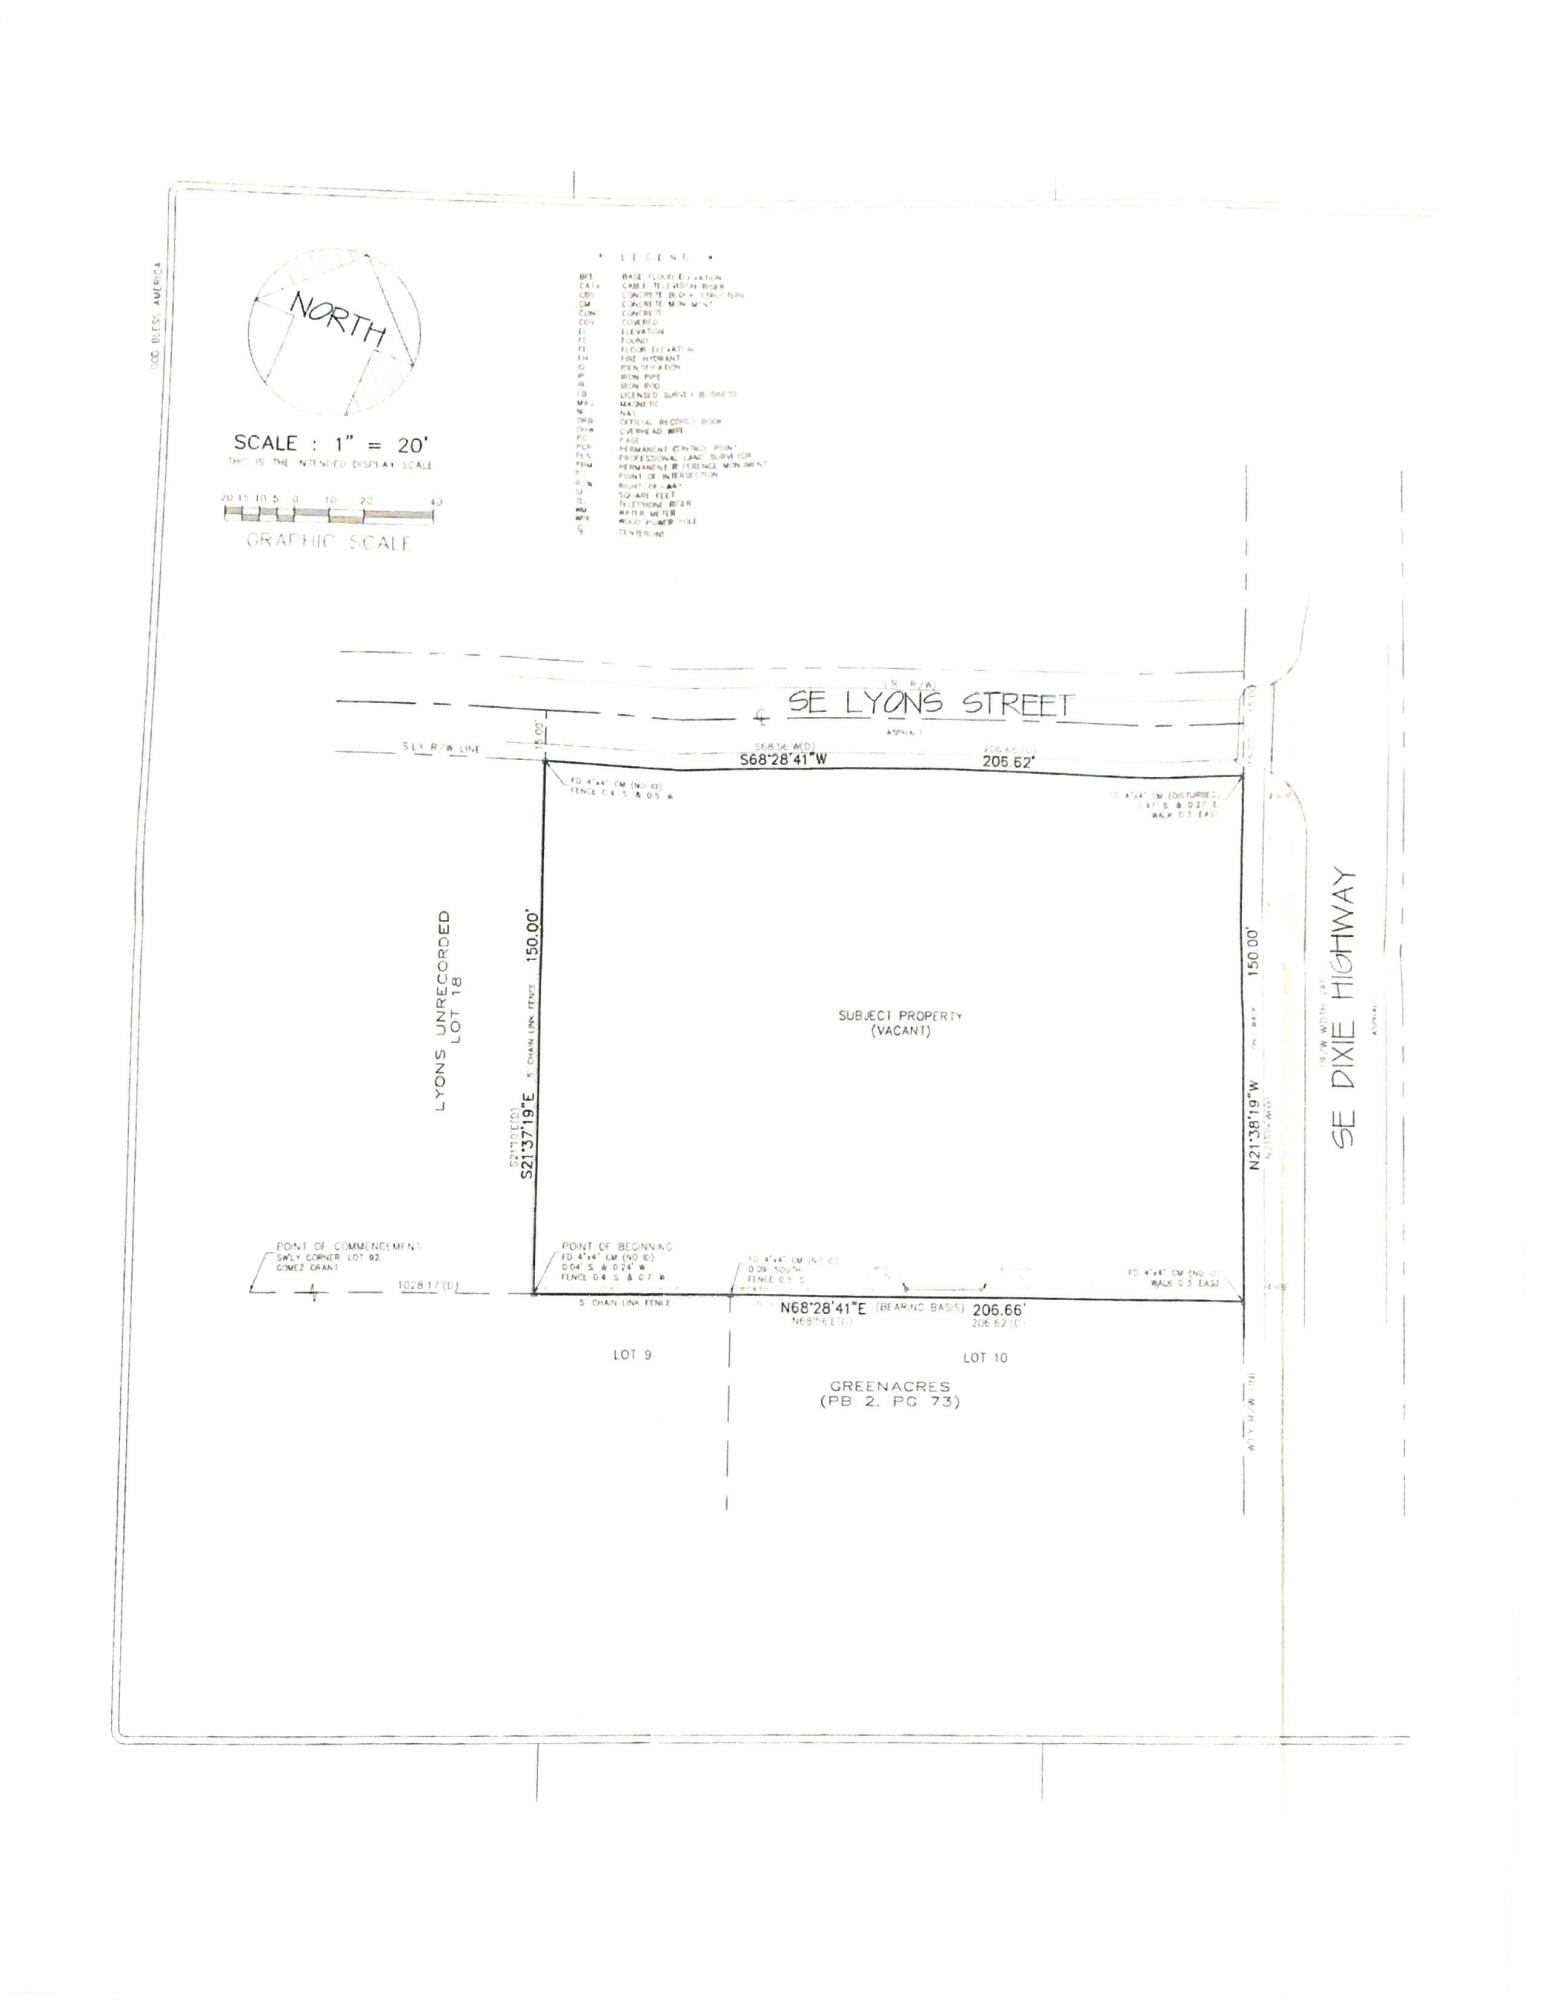 Vacant lot survey photo for MLS photos